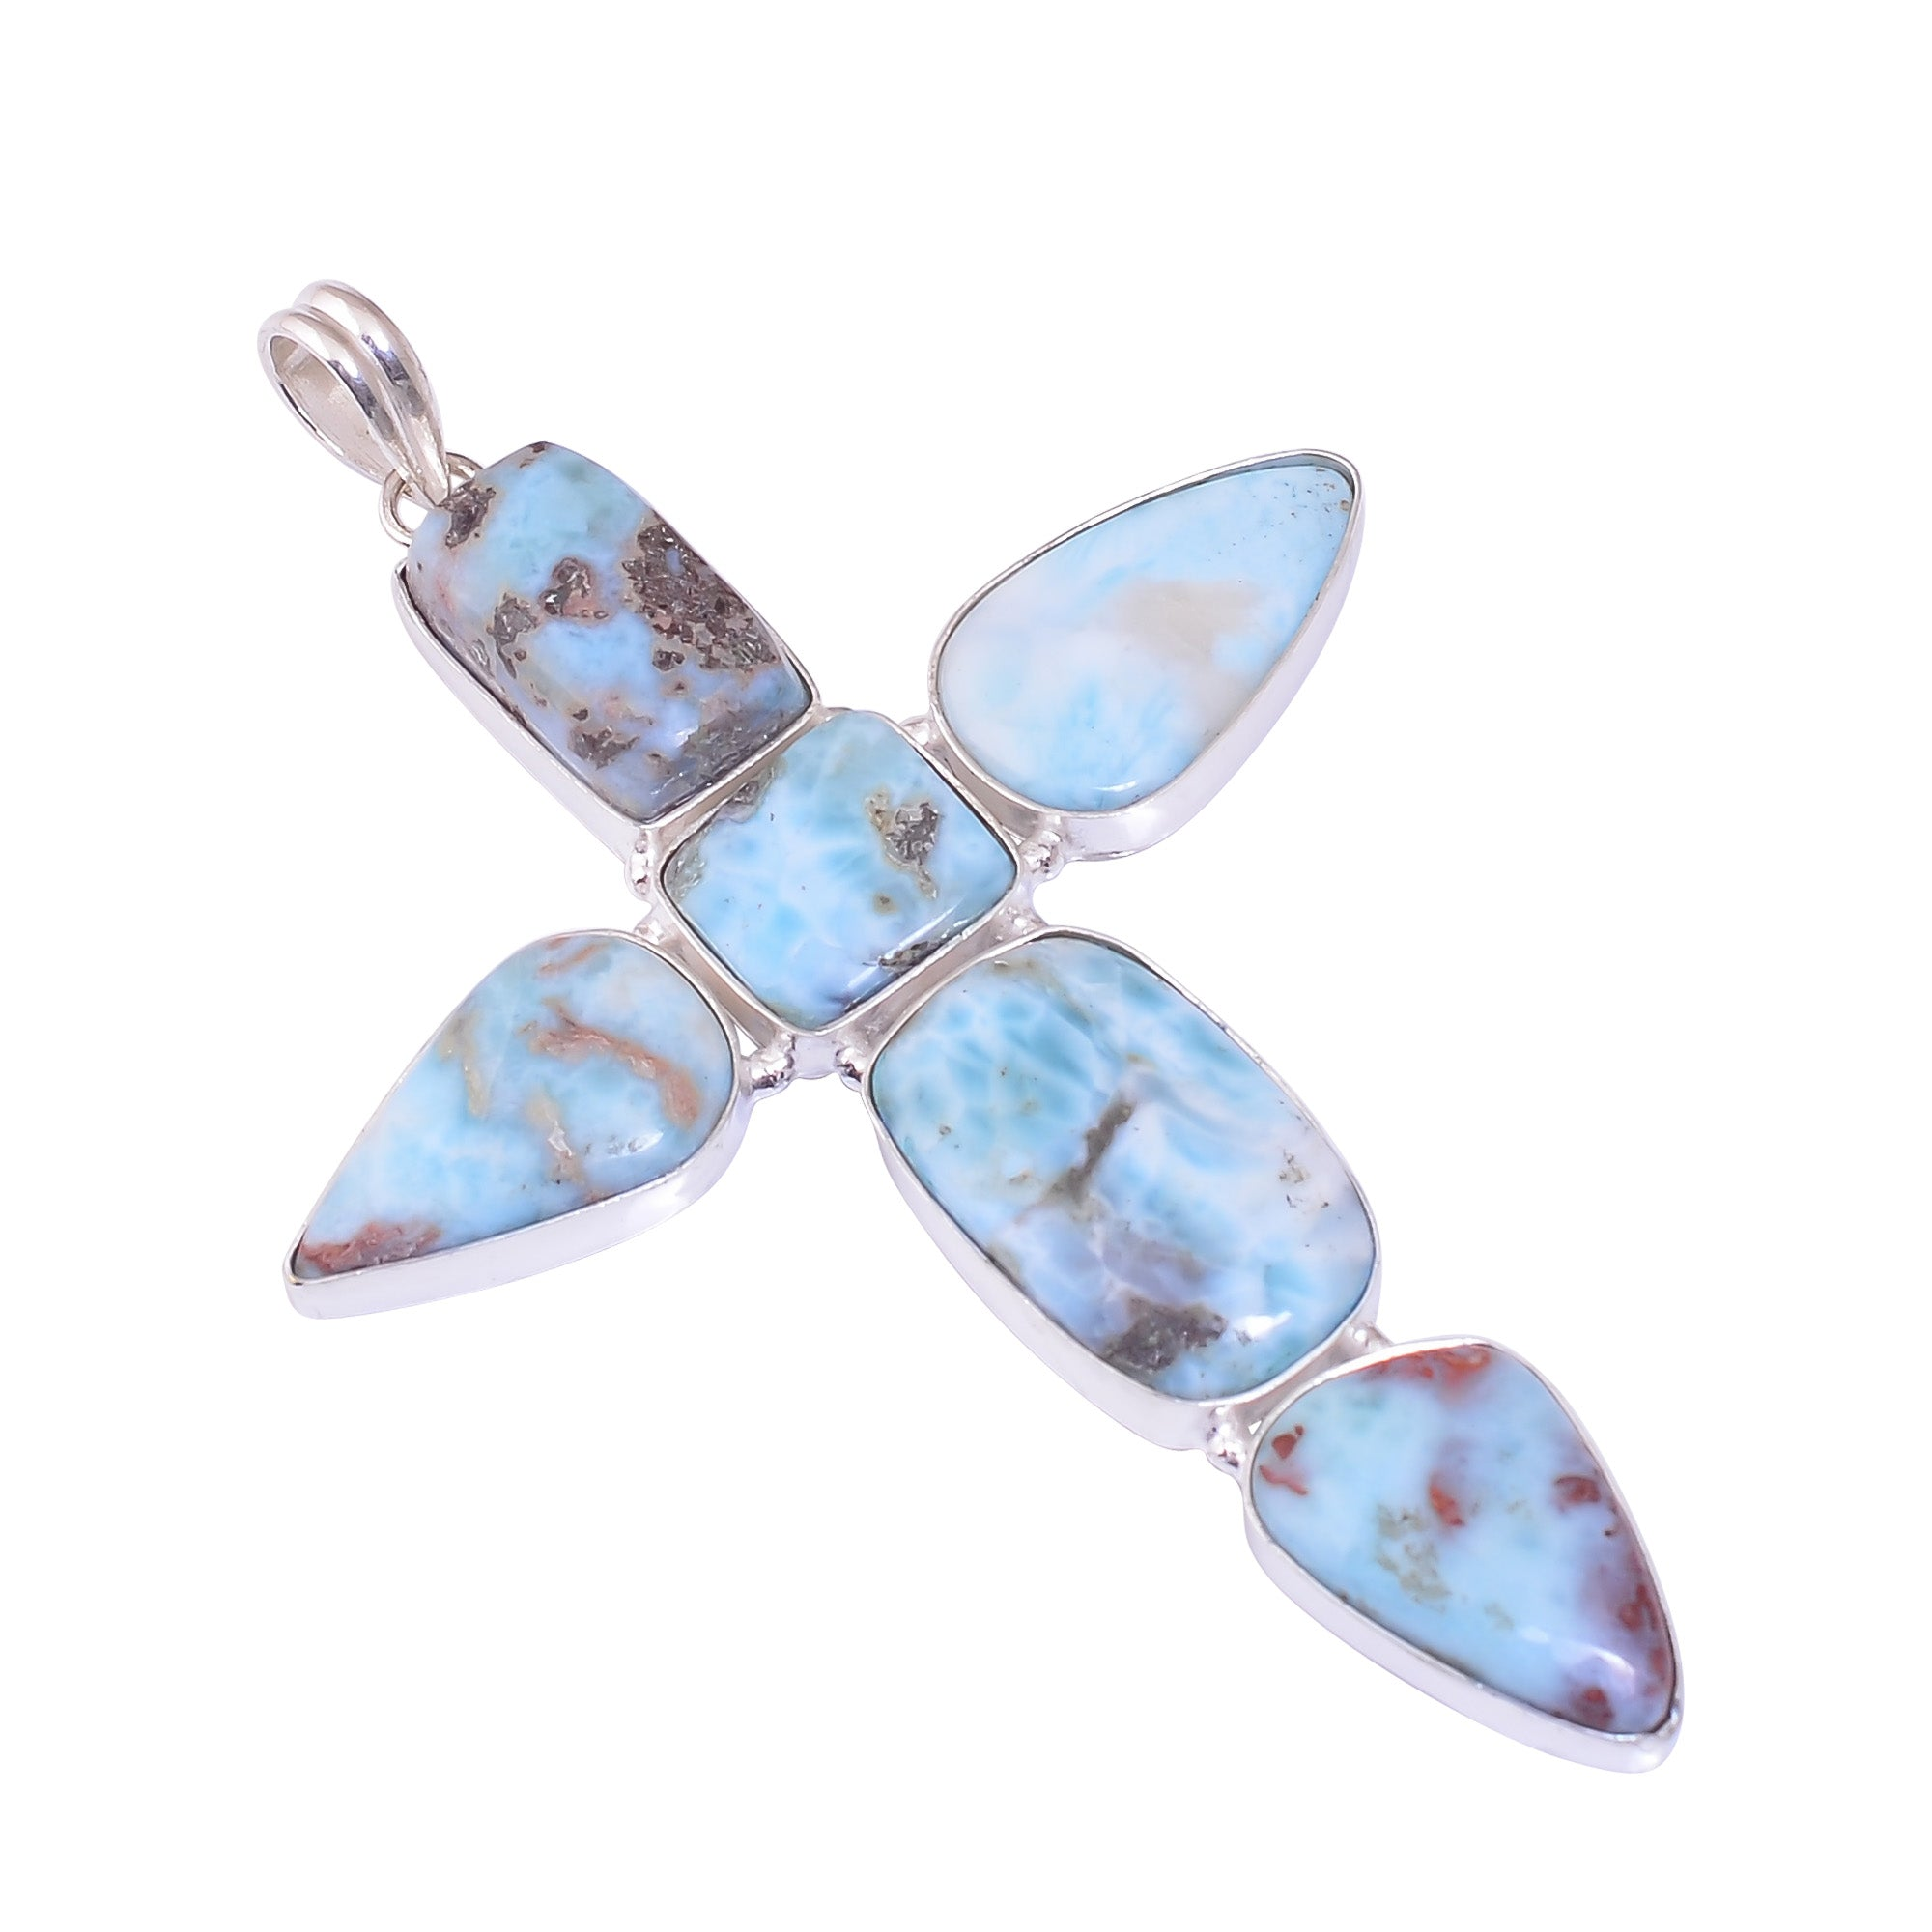 Sterling Silver Overlay Cross Pendant with Larimar Gemstone, Natural Handmade Stone Necklace for Women with Rhodium Plated Chain, NLG-1698